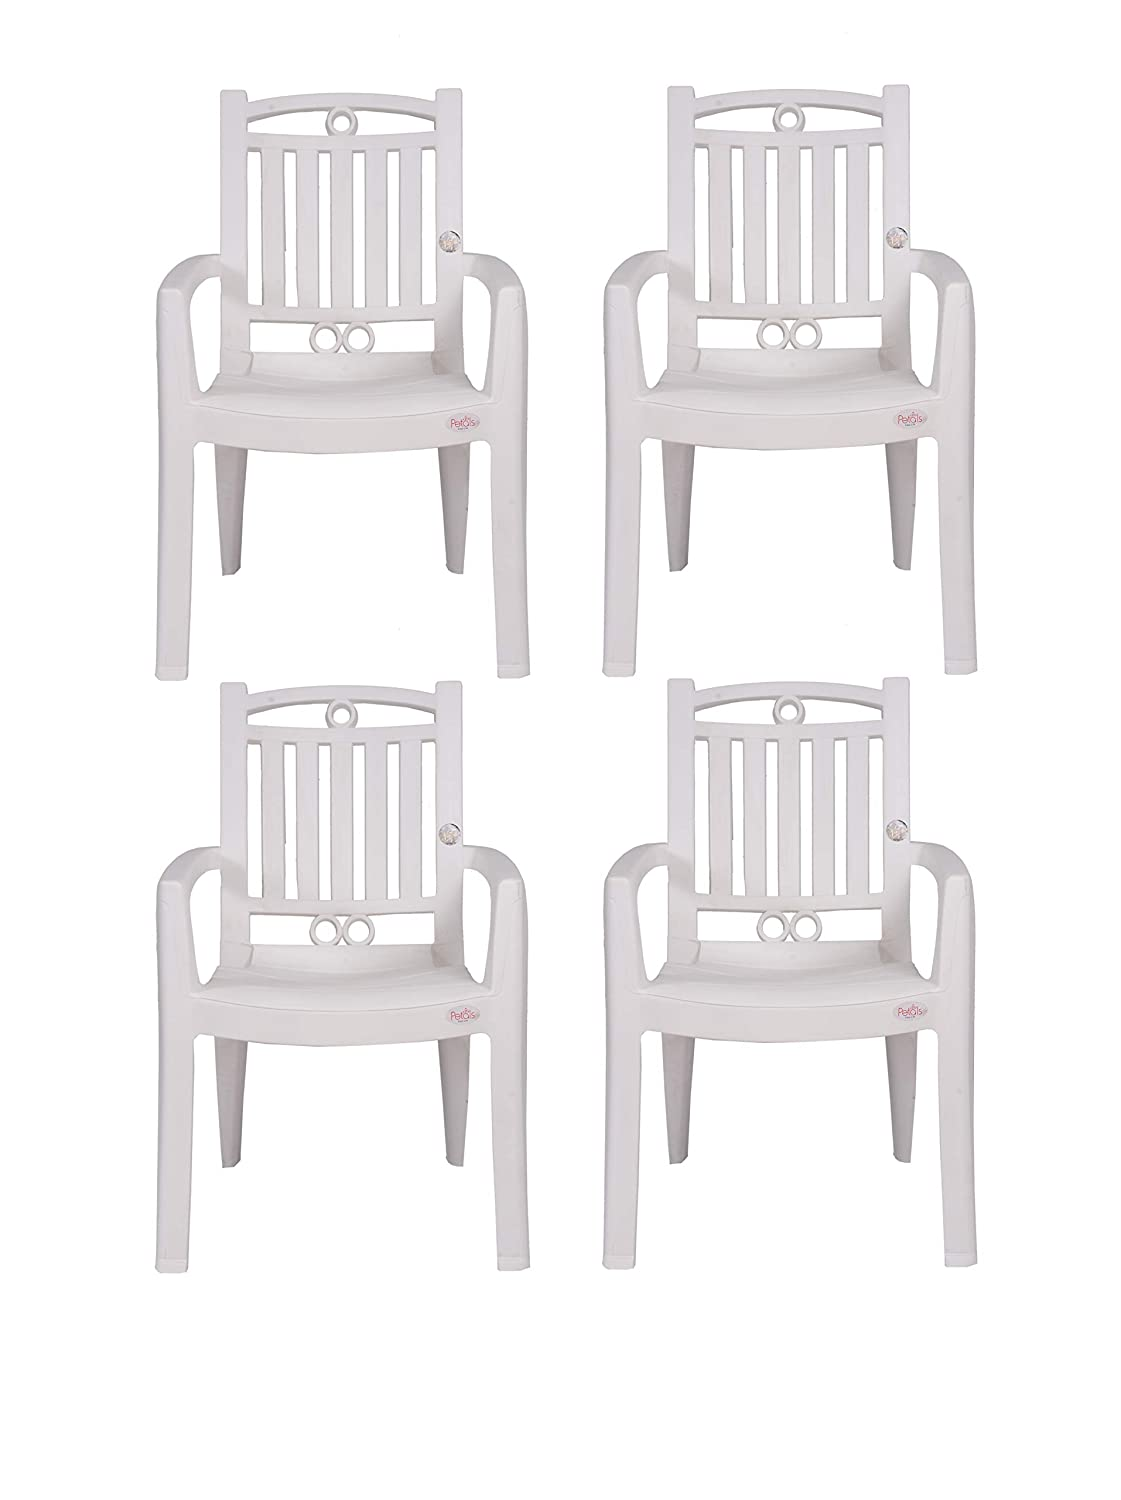 Petals Swiss Arm Chair (White, Set Of 4)